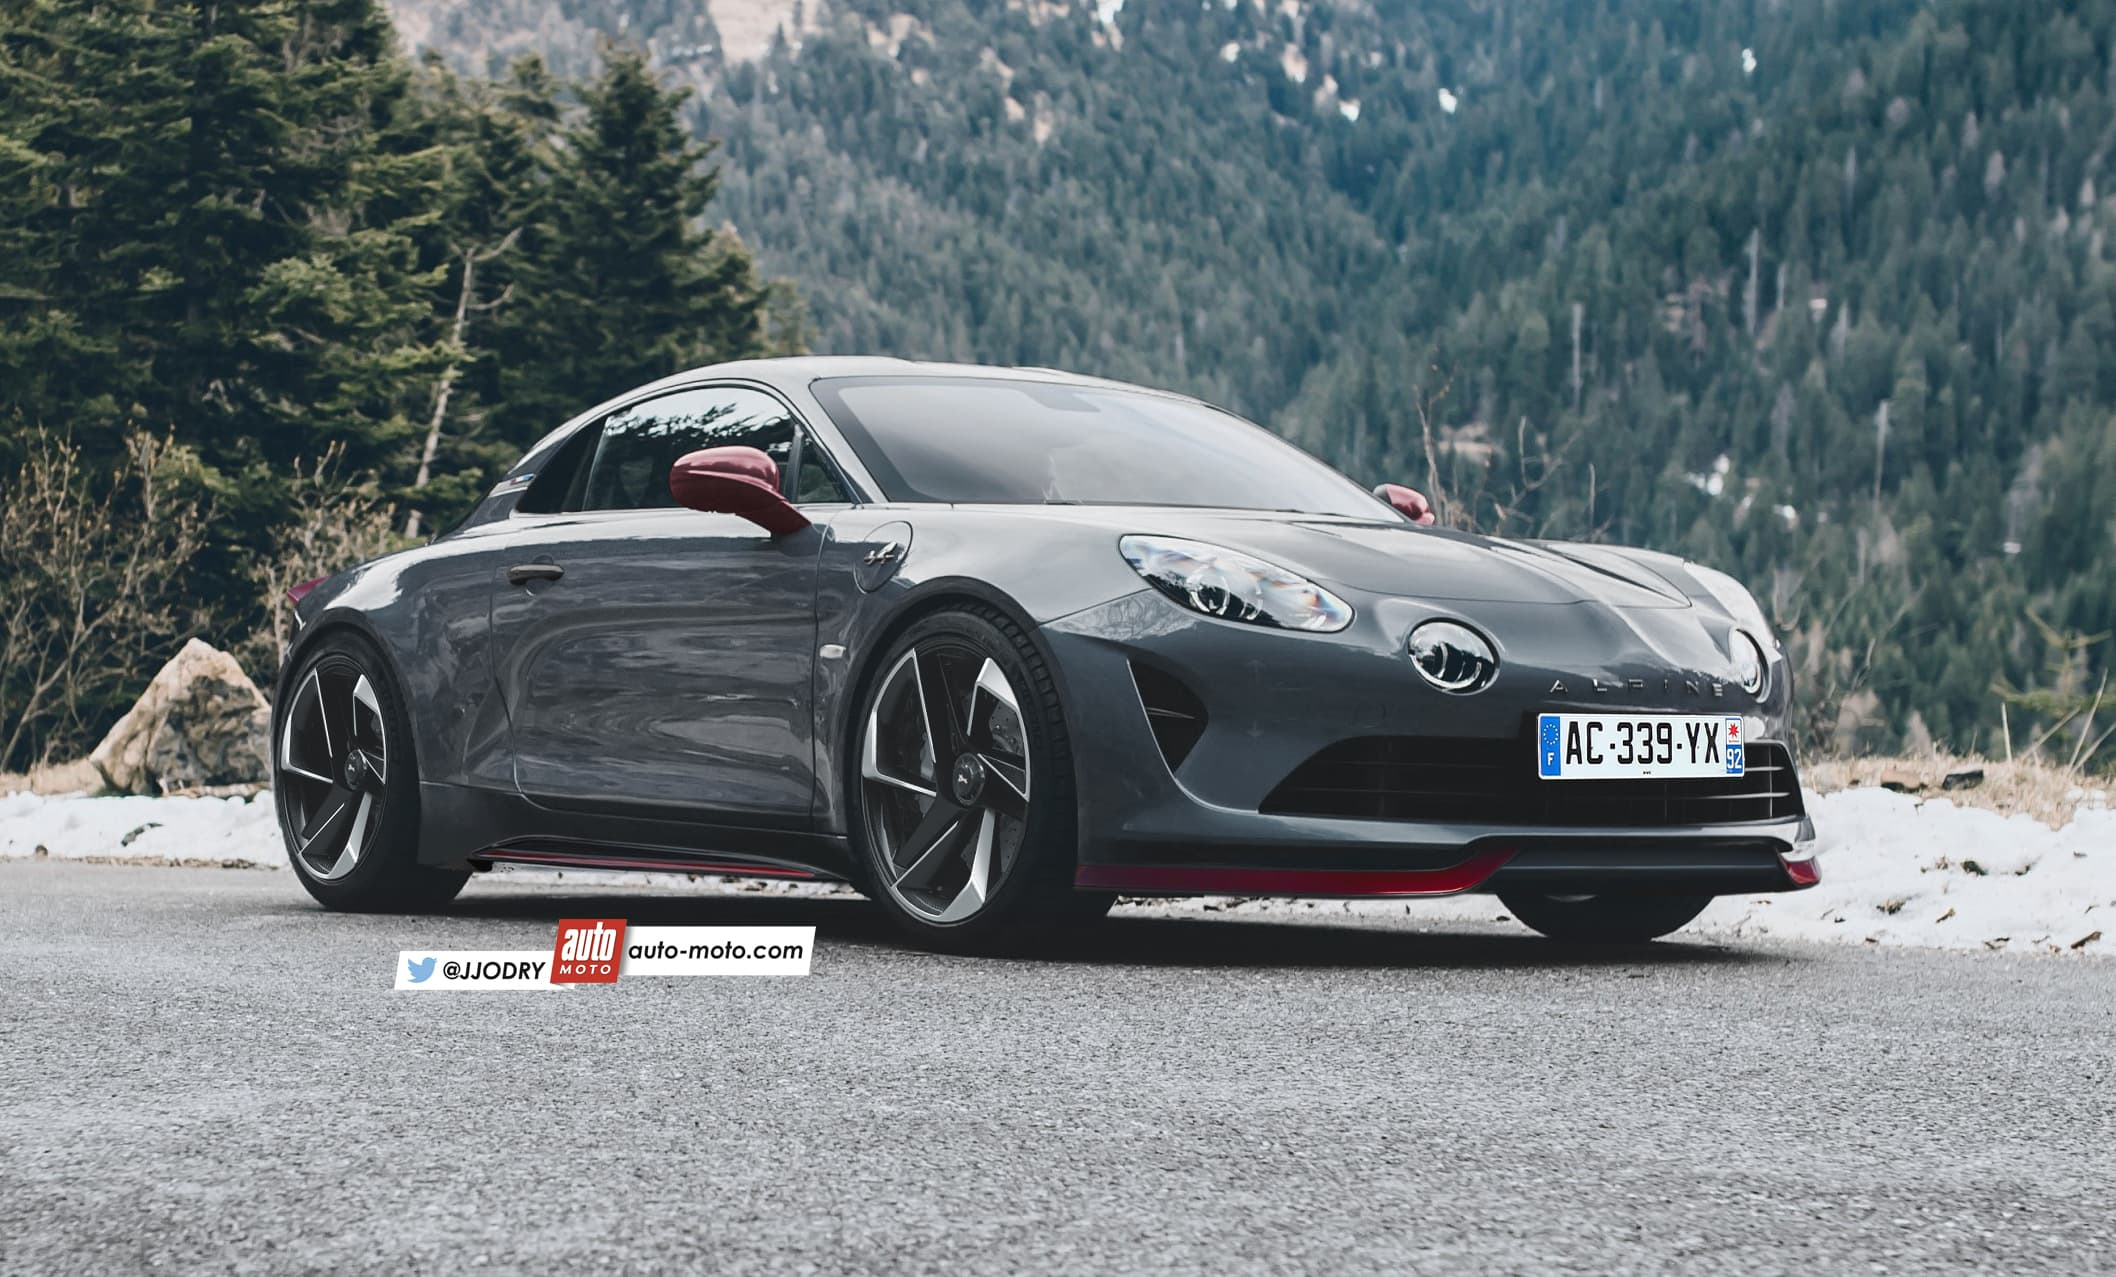 La version radicale de l'Alpine A110 se confirme ! 1